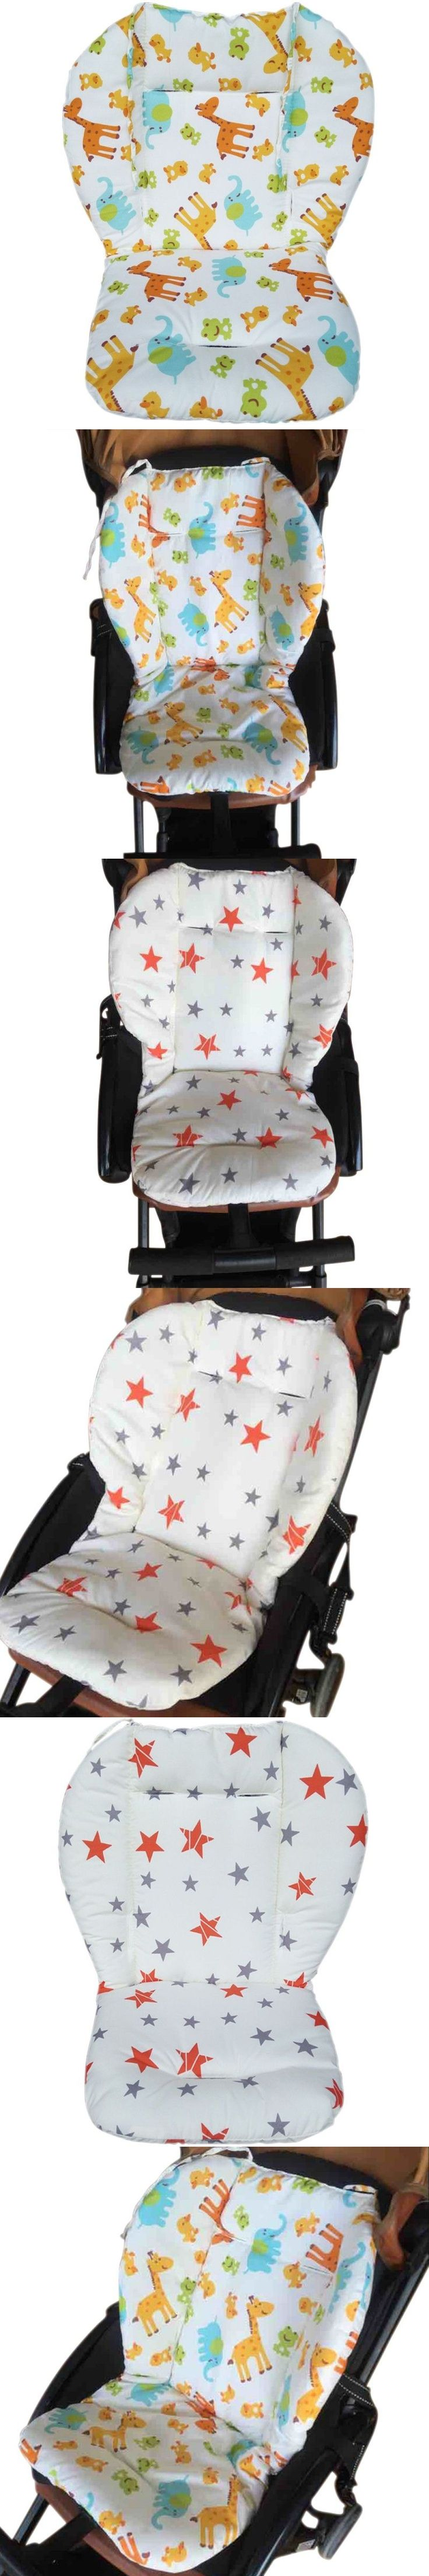 New Universal Car Seat Covers Auto Soft Thick Pram Cushion Car Seat Pad Covers for Baby Kids Children Safe Set Pads